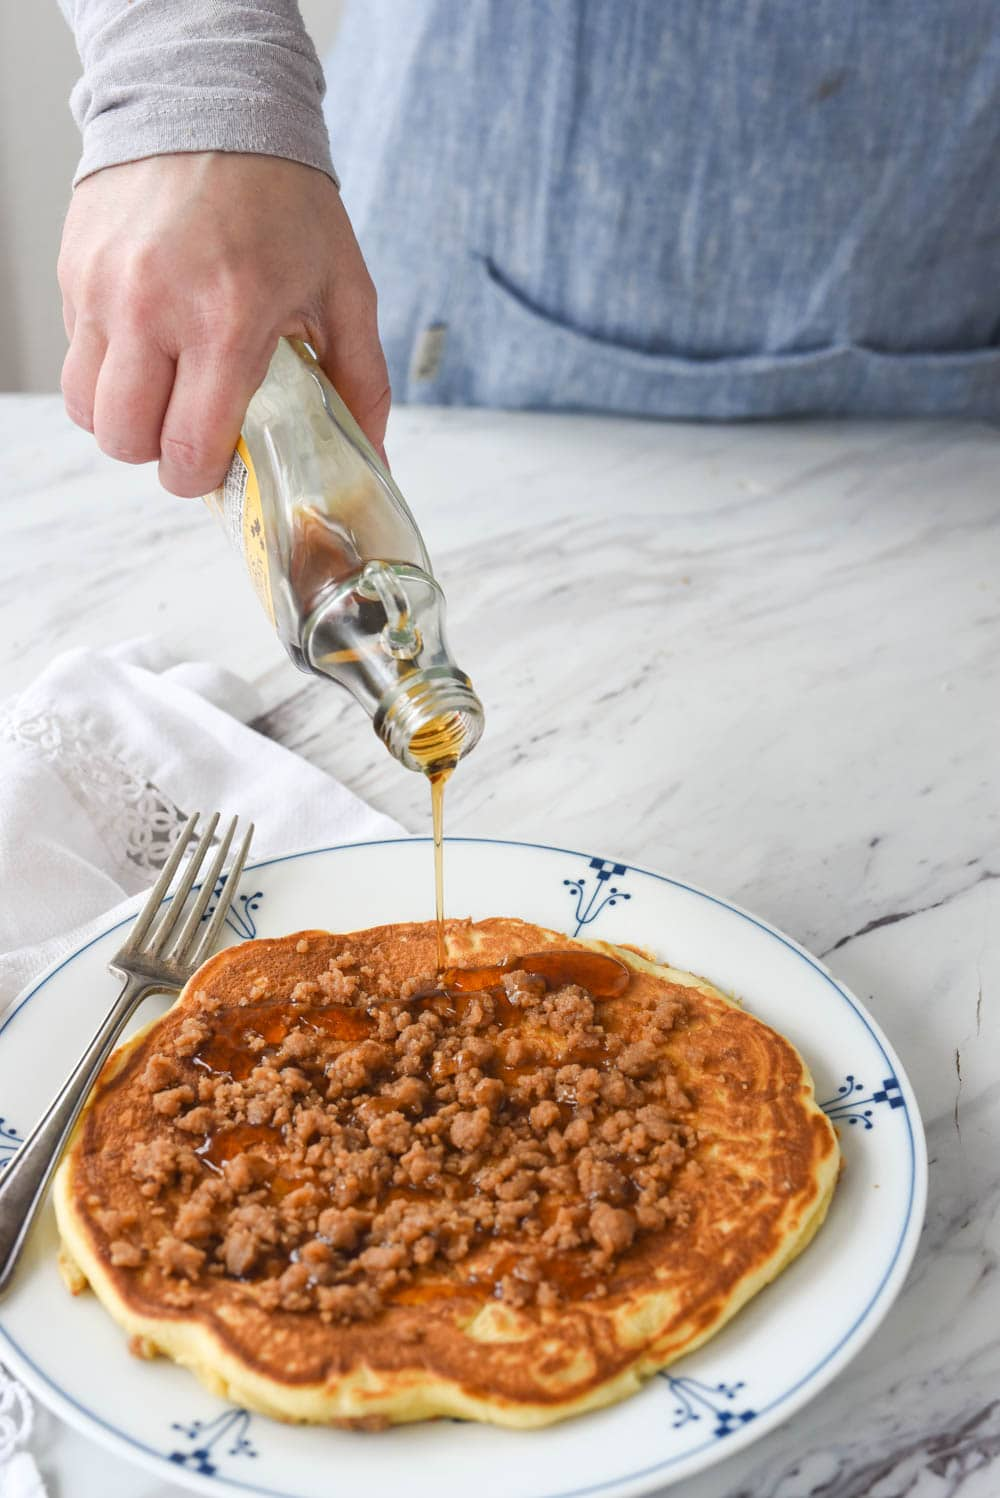 pouring syrup on streusel pancake